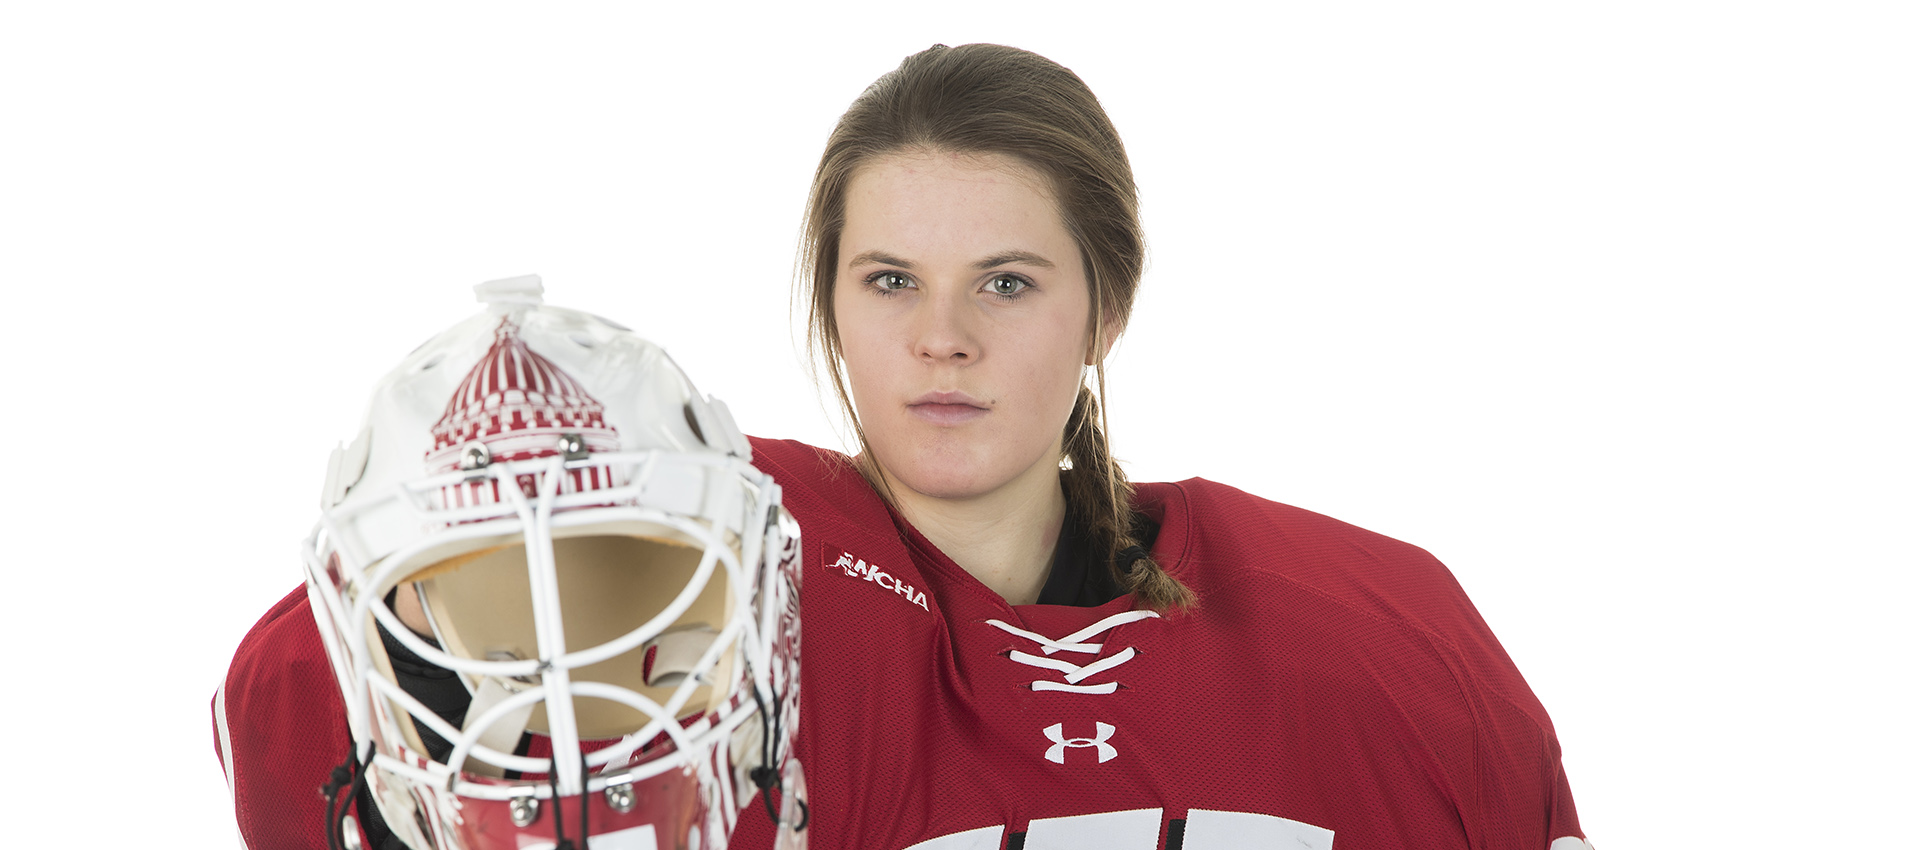 Wisconsin Badgers women's hockey goalie Kristen Campbell (35) during a portrait shoot at LaBahn Arena Thursday, November 16, 2017, in Madison, Wis. (Photo by David Stluka)